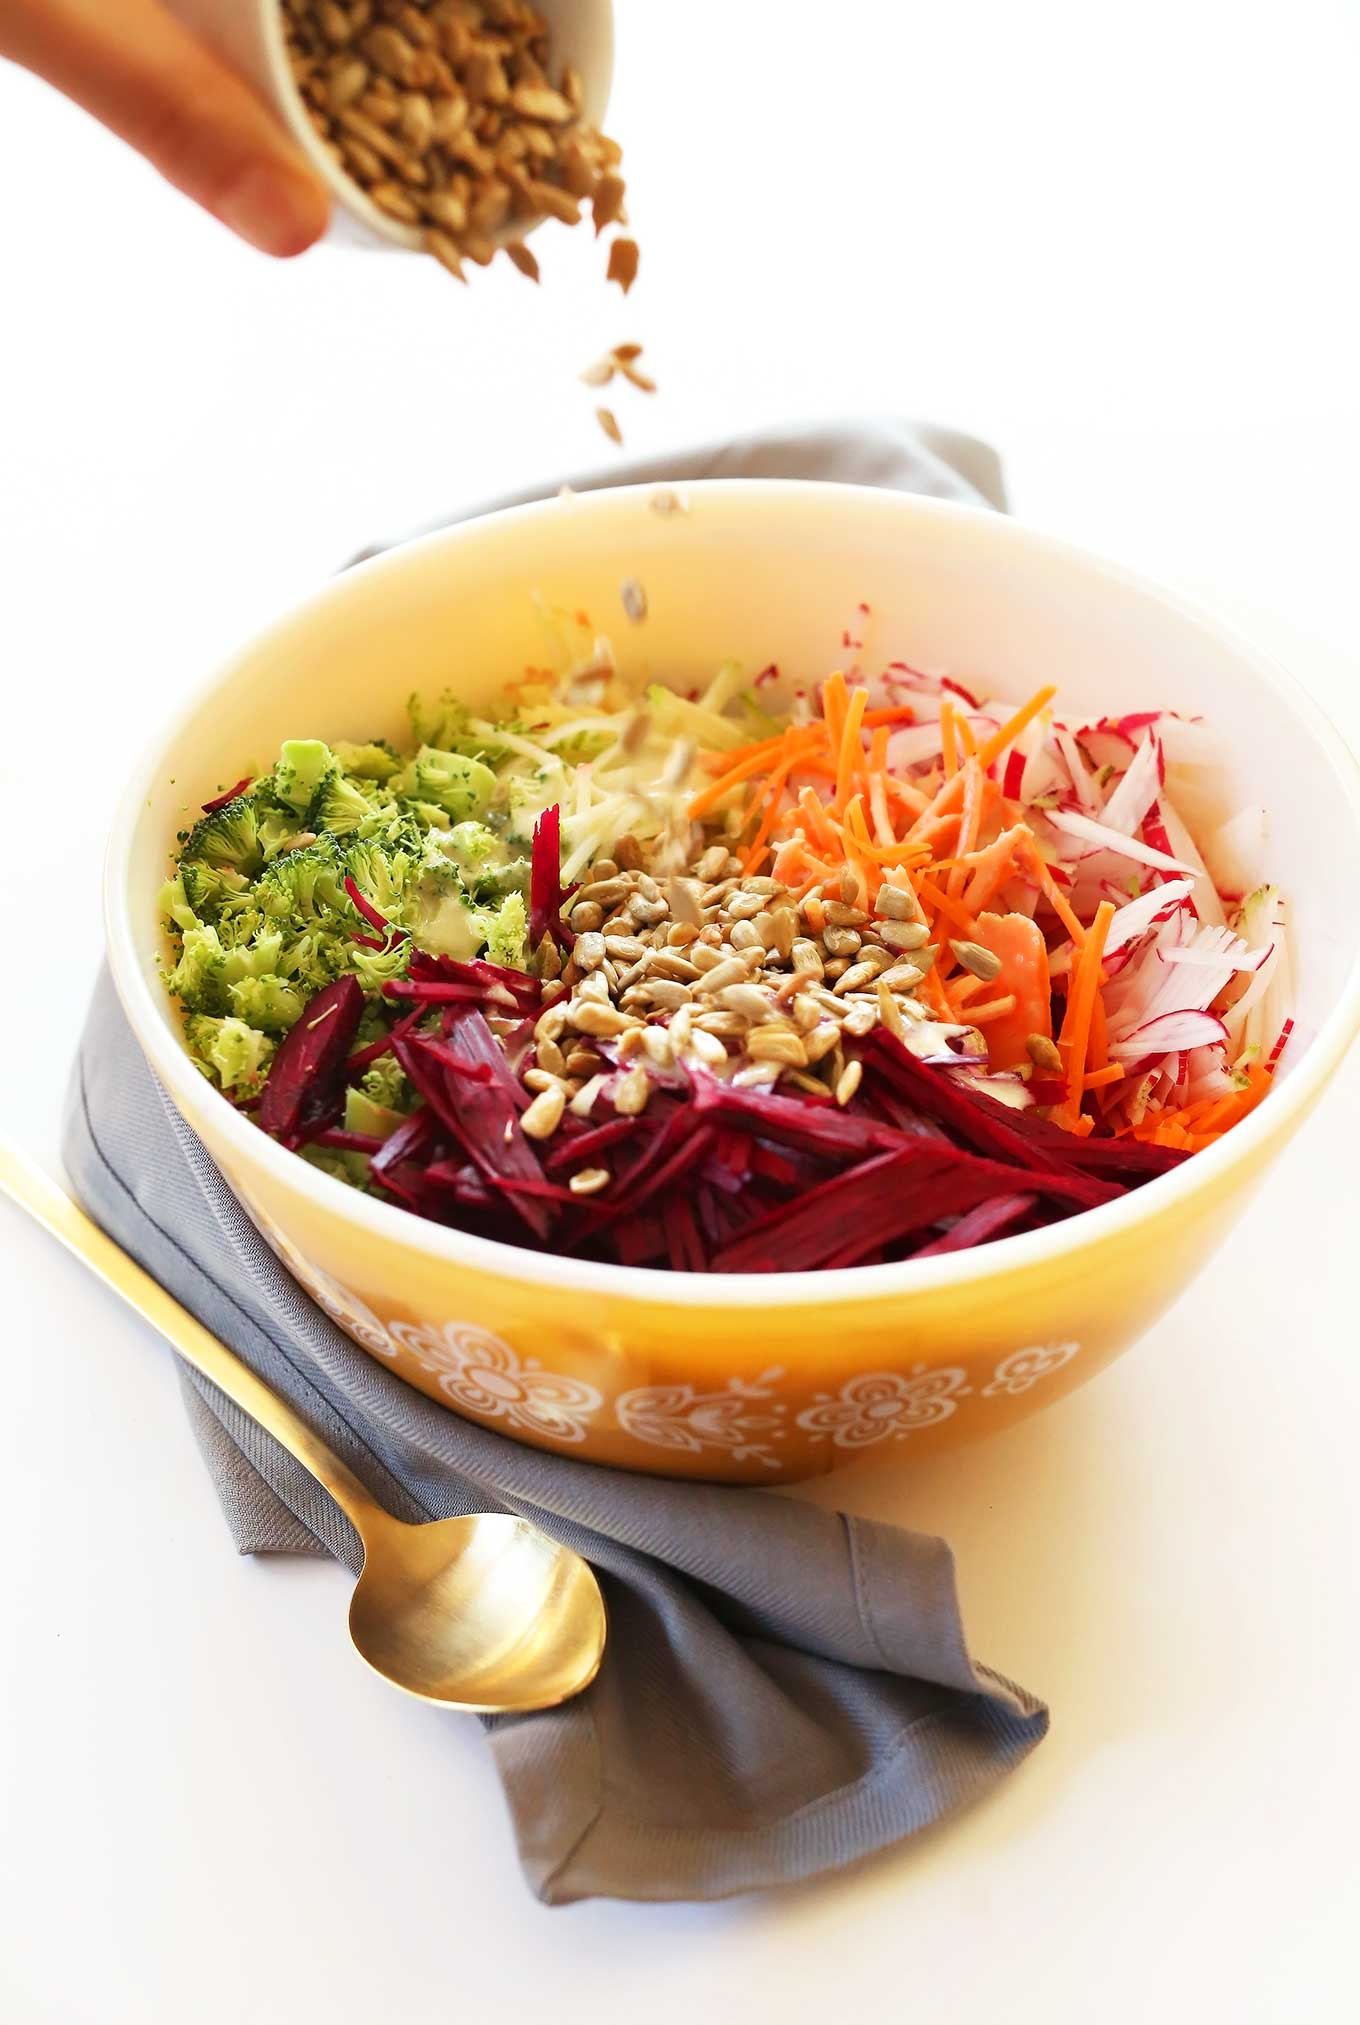 Sprinkling sunflower seeds onto our healthy fall slaw for a Thanksgiving salad